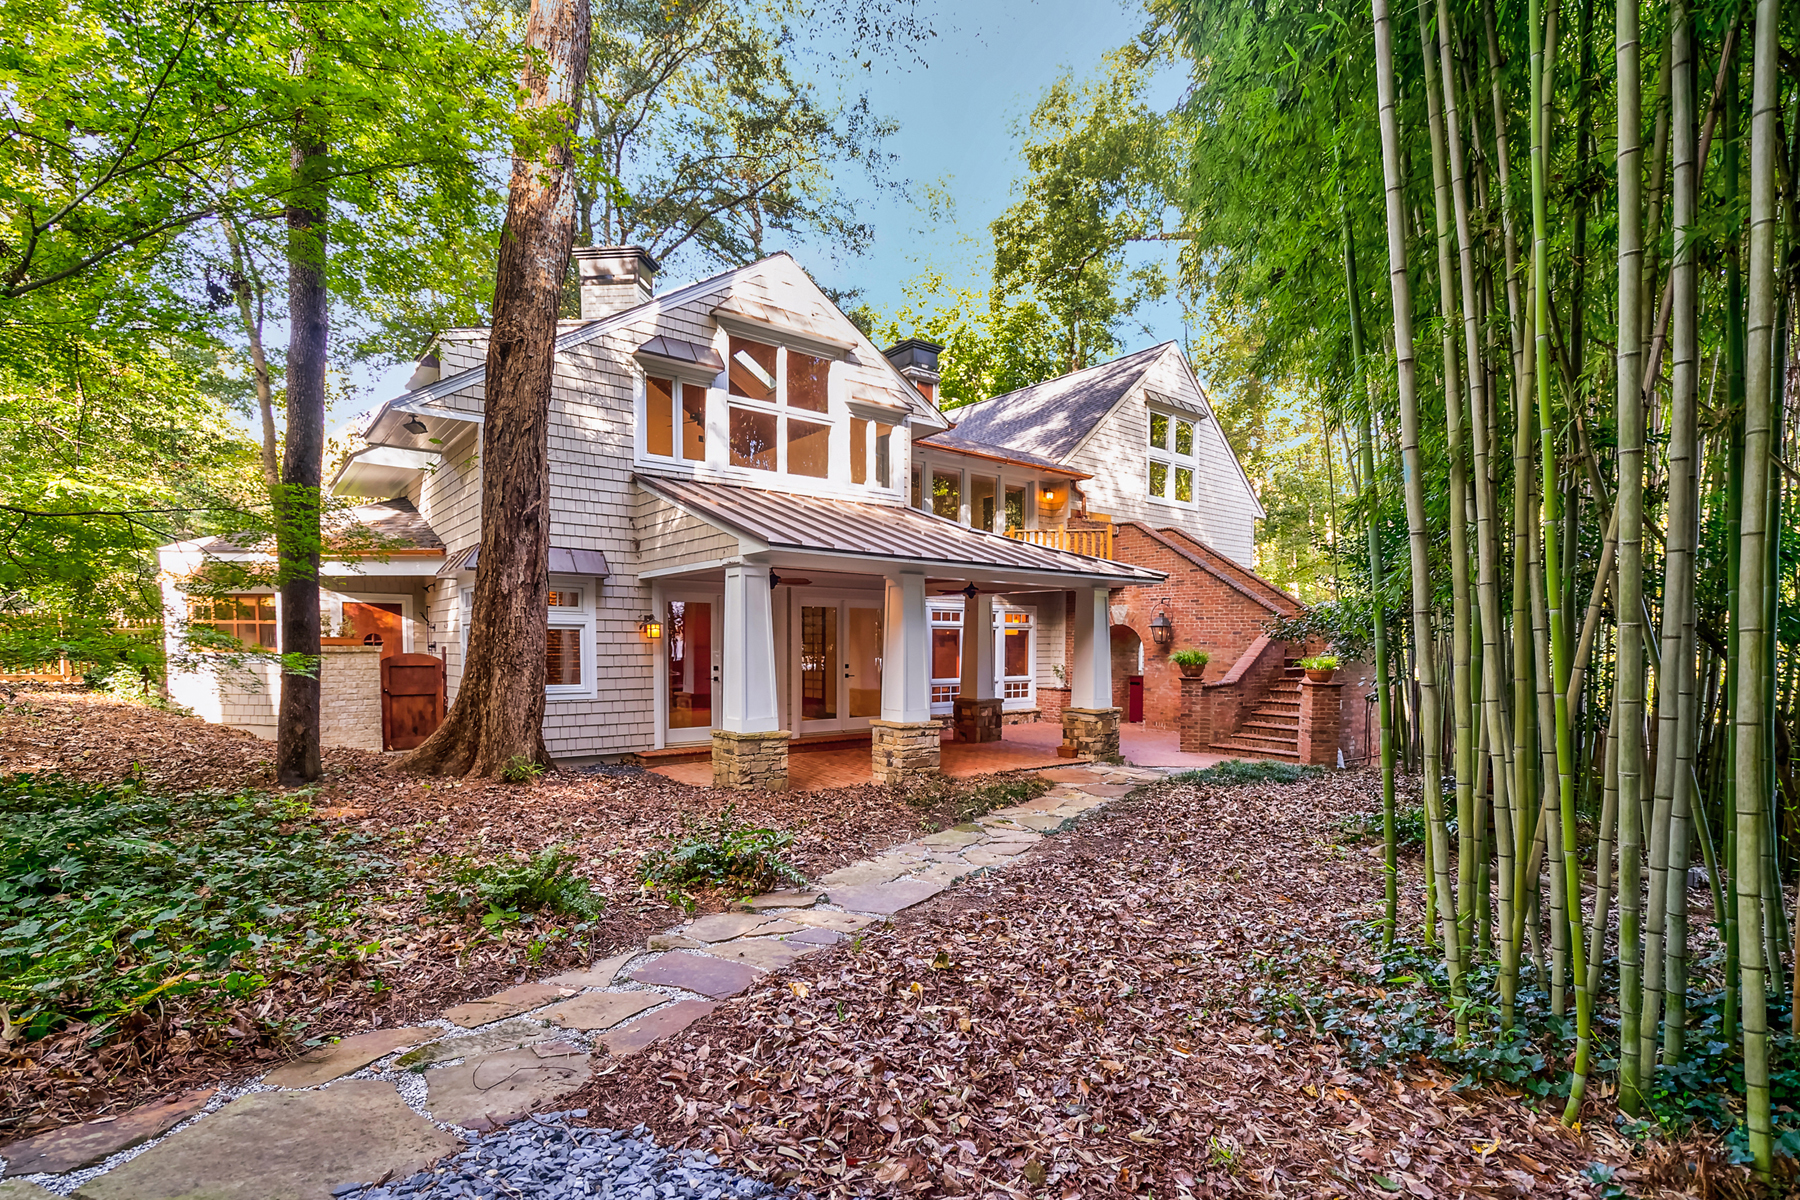 One Of A Kind, Totally Remodeled Home On A Private 1.01+/- Acre Lot 1867 Windemere Drive NE Atlanta, Georgia 30324 États-Unis